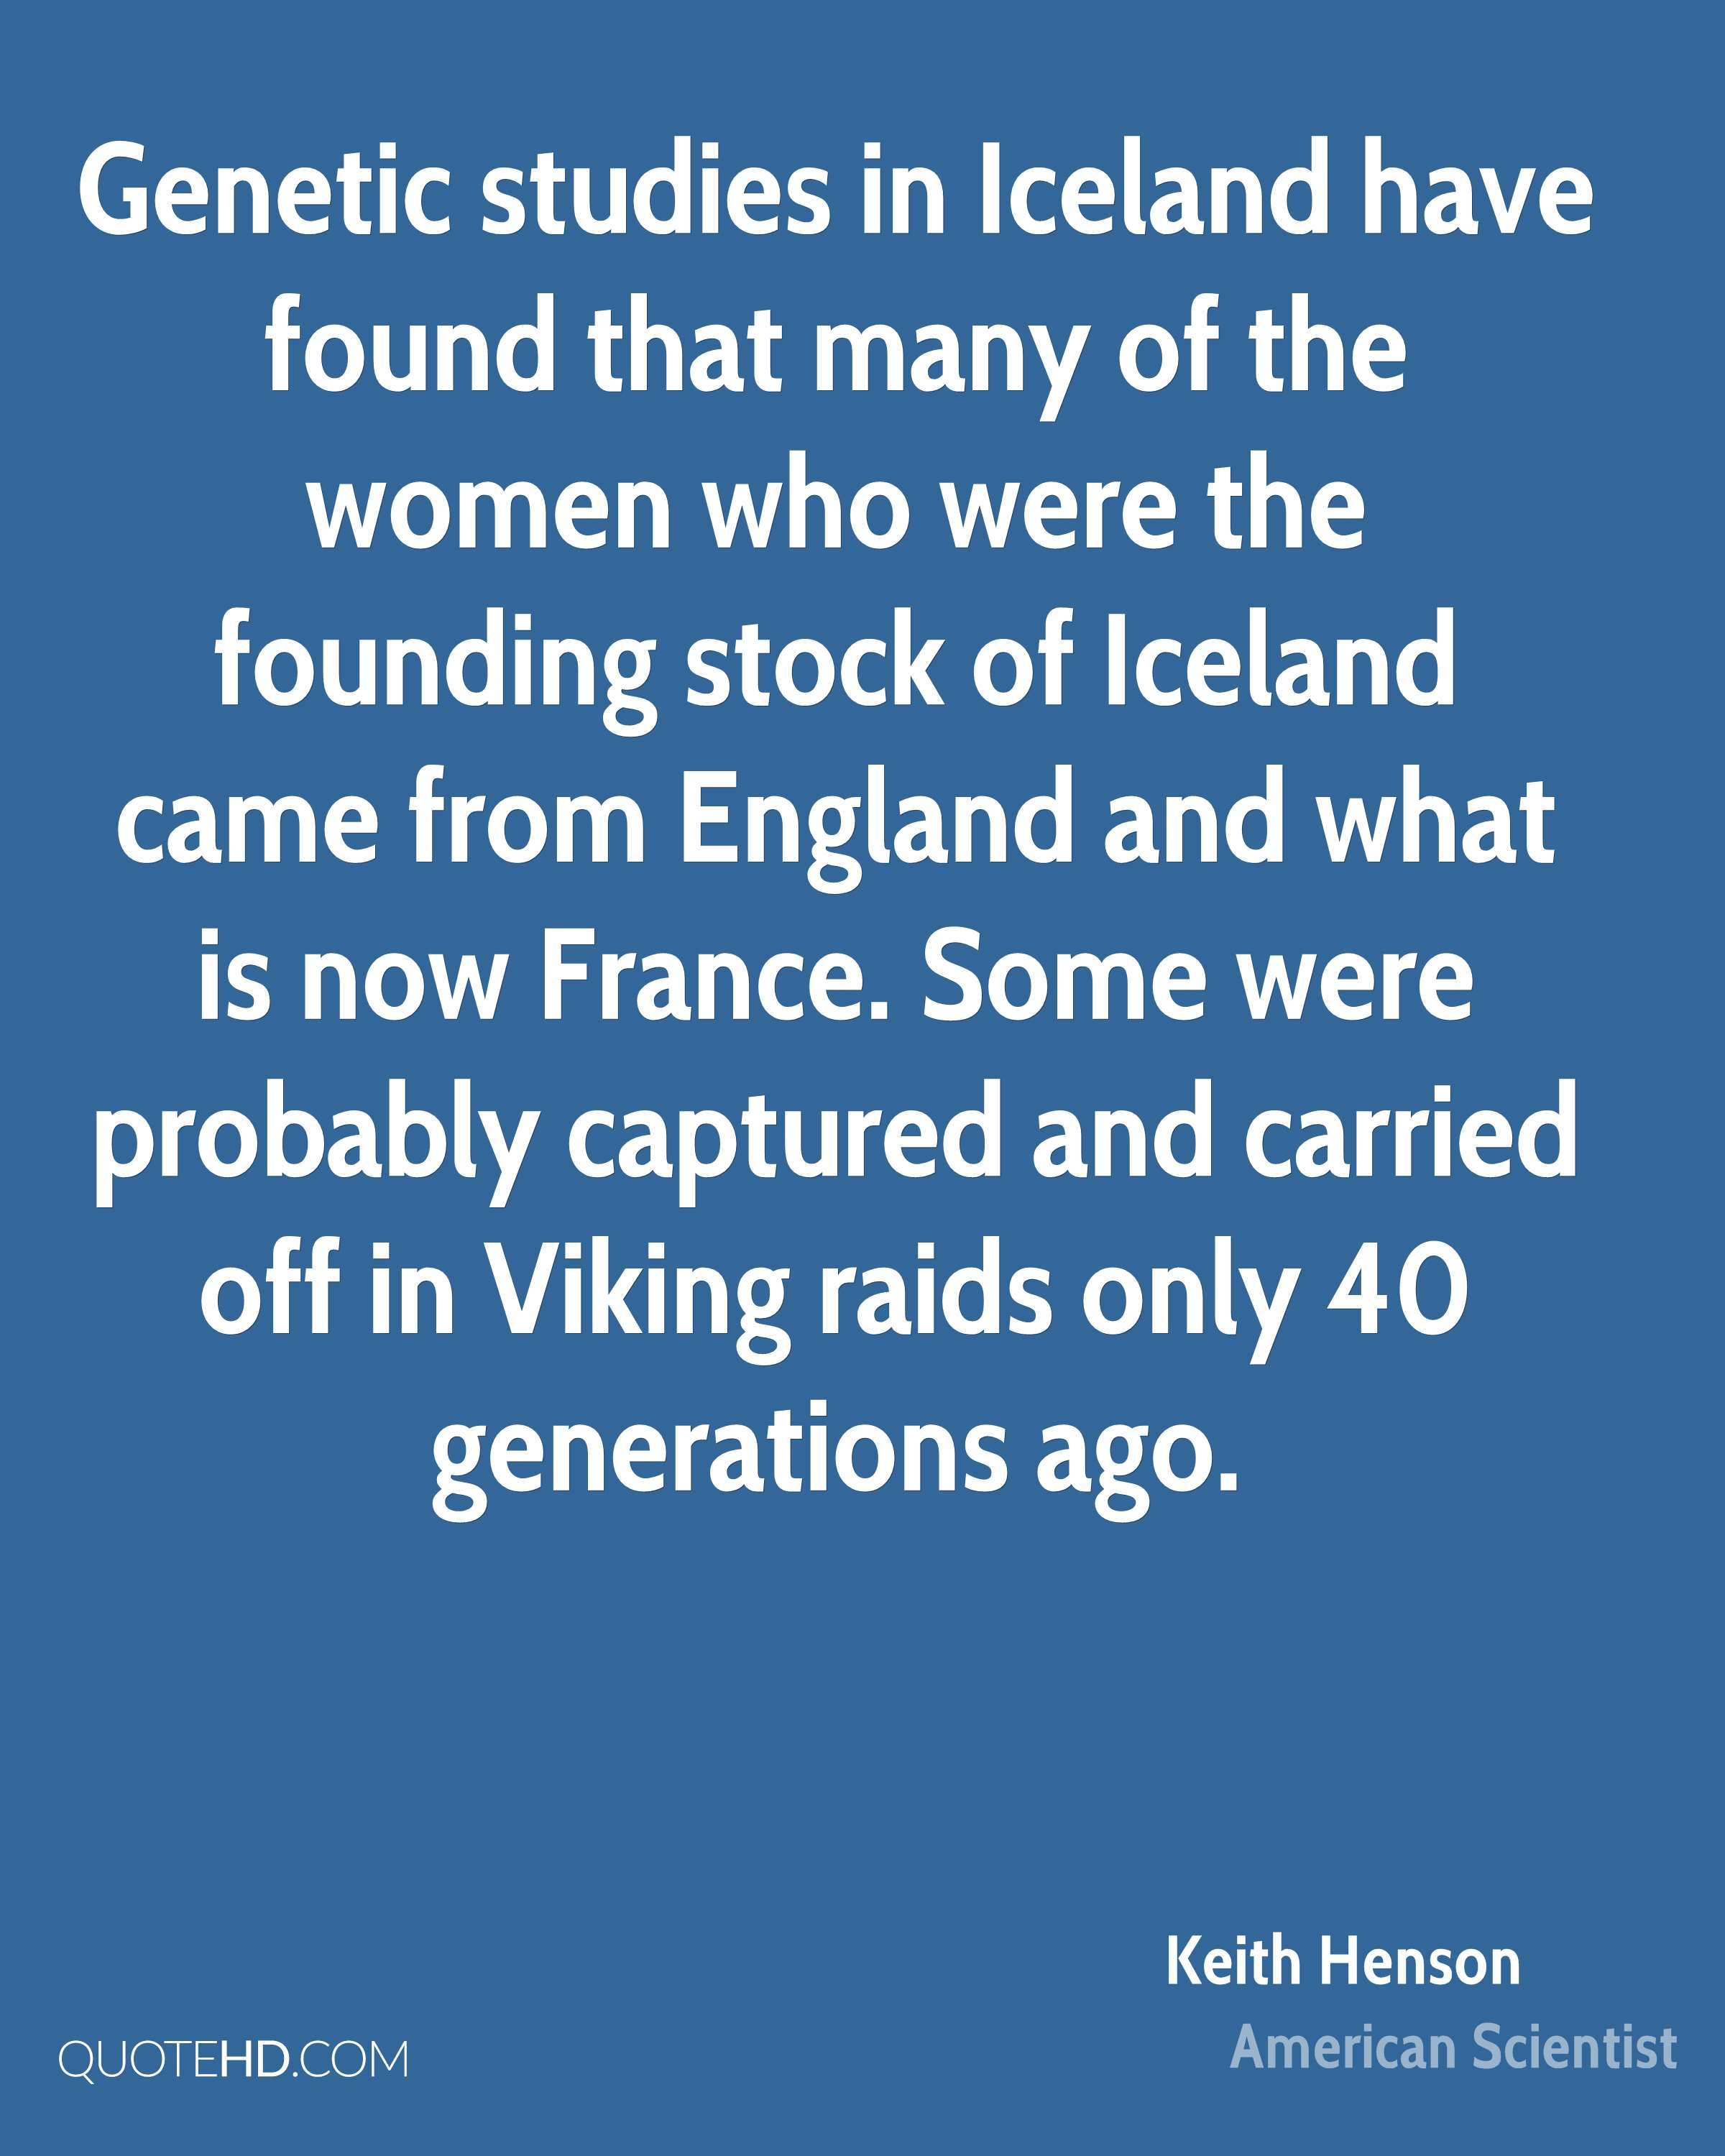 Genetic studies in Iceland have found that many of the women who were the founding stock of Iceland came from England and what is now France. Some were probably captured and carried off in Viking raids only 40 generations ago.